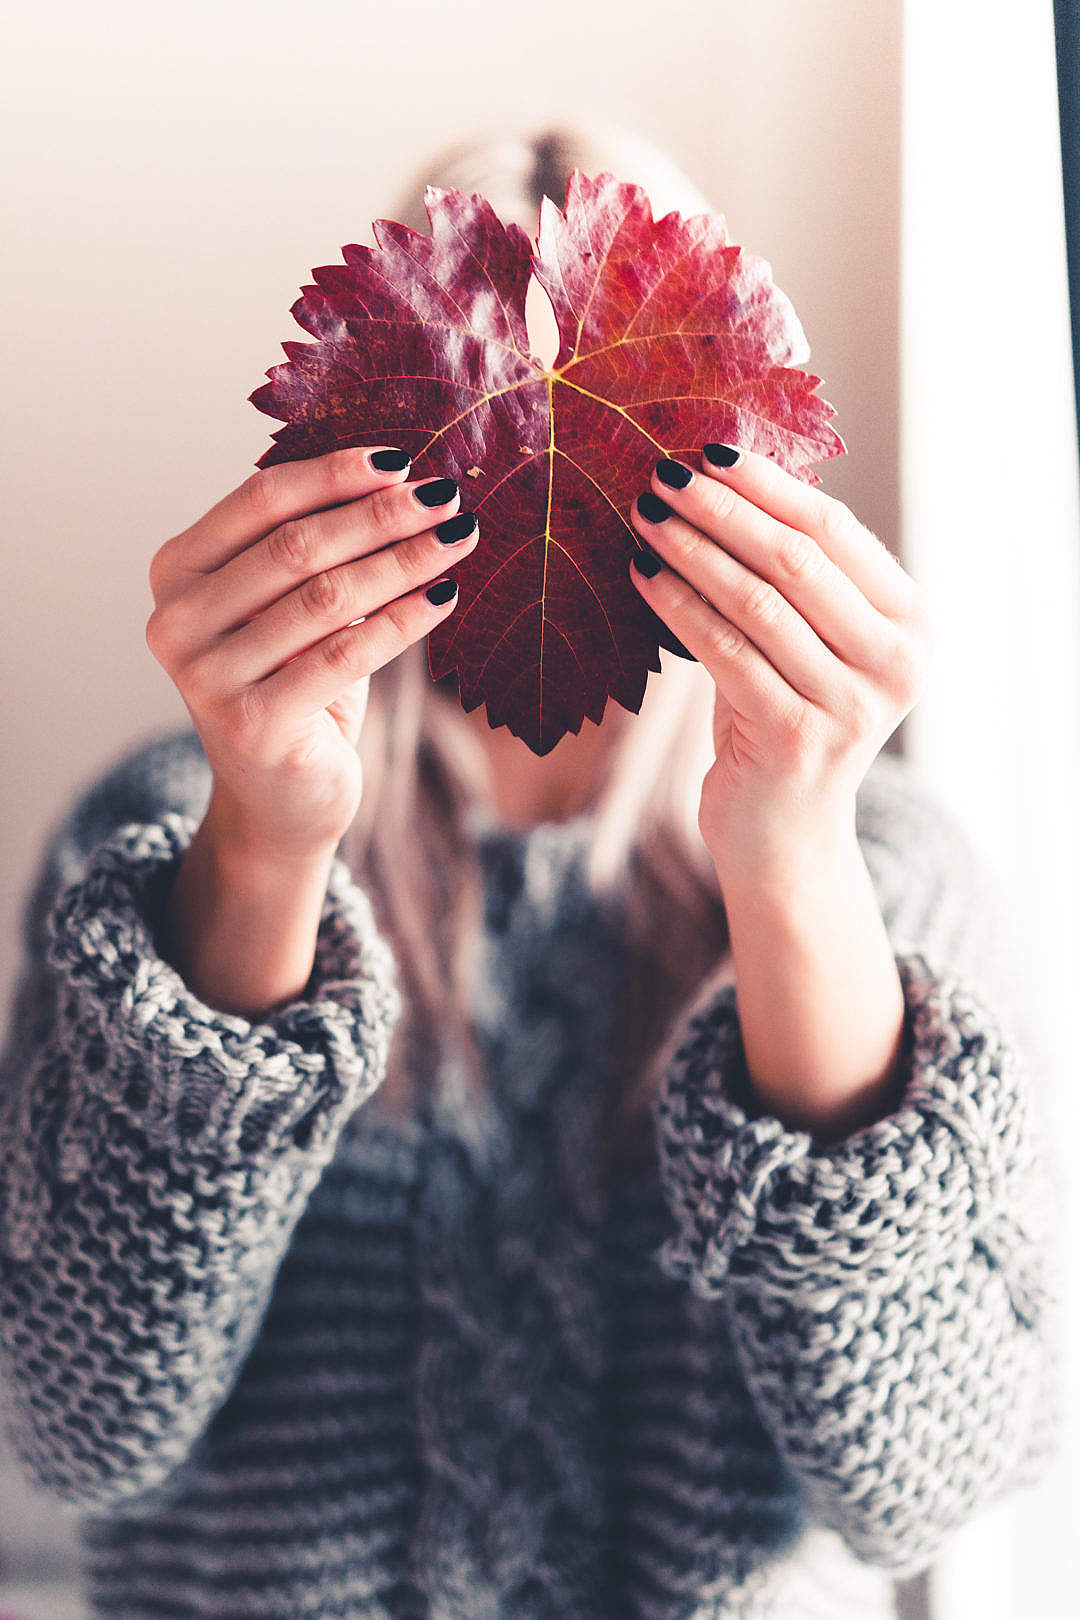 Download Woman Holding an Autumn Leaf FREE Stock Photo